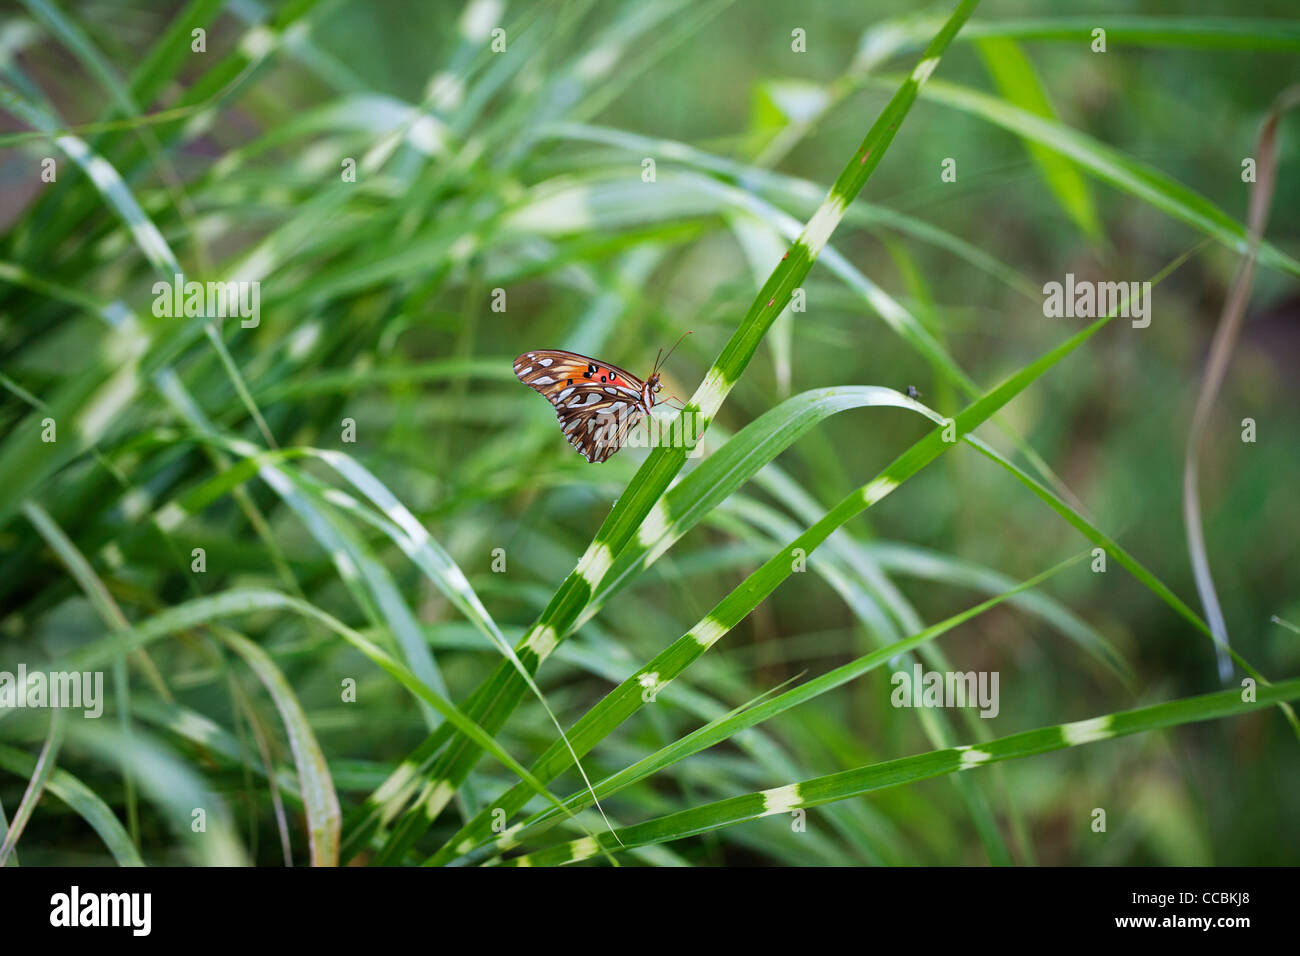 Butterfly resting on grass - Stock Image